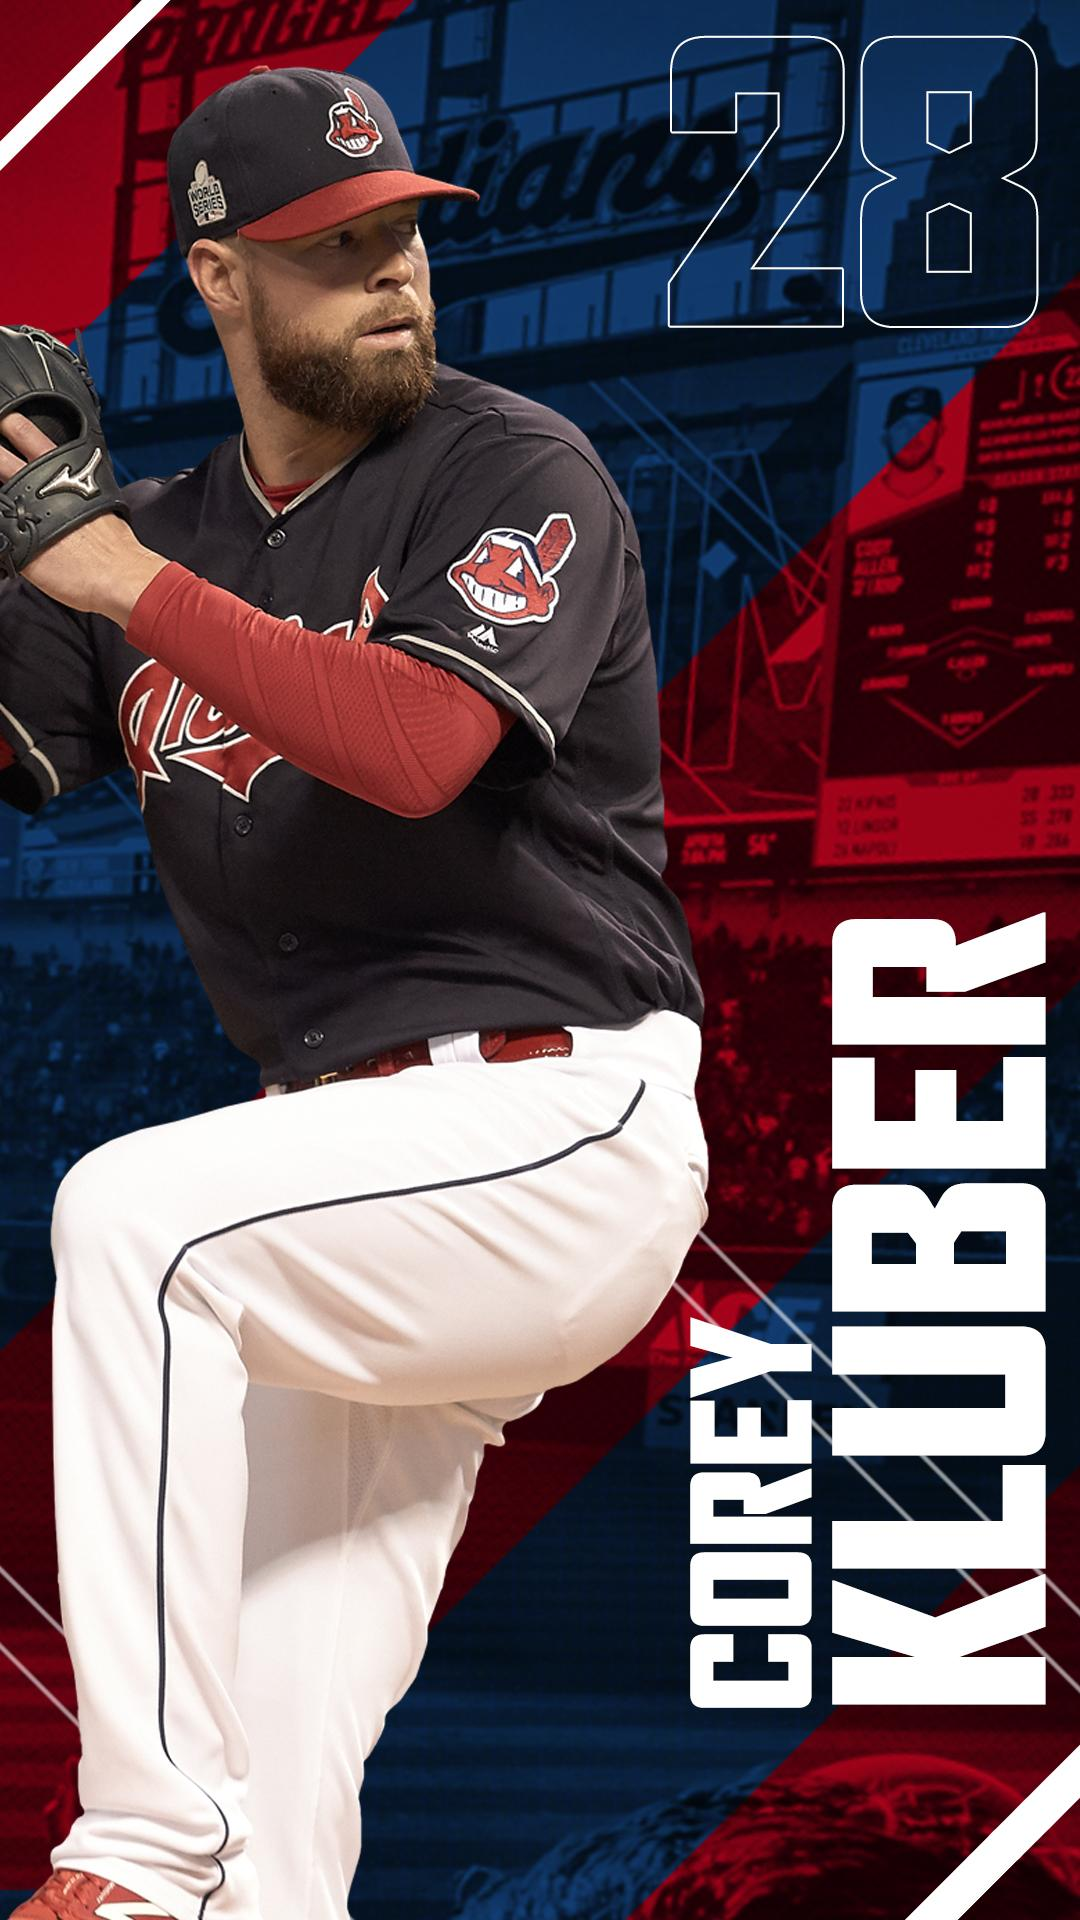 Best 62+ Corey Kluber Wallpaper on HipWallpaper | Corey Kluber ...